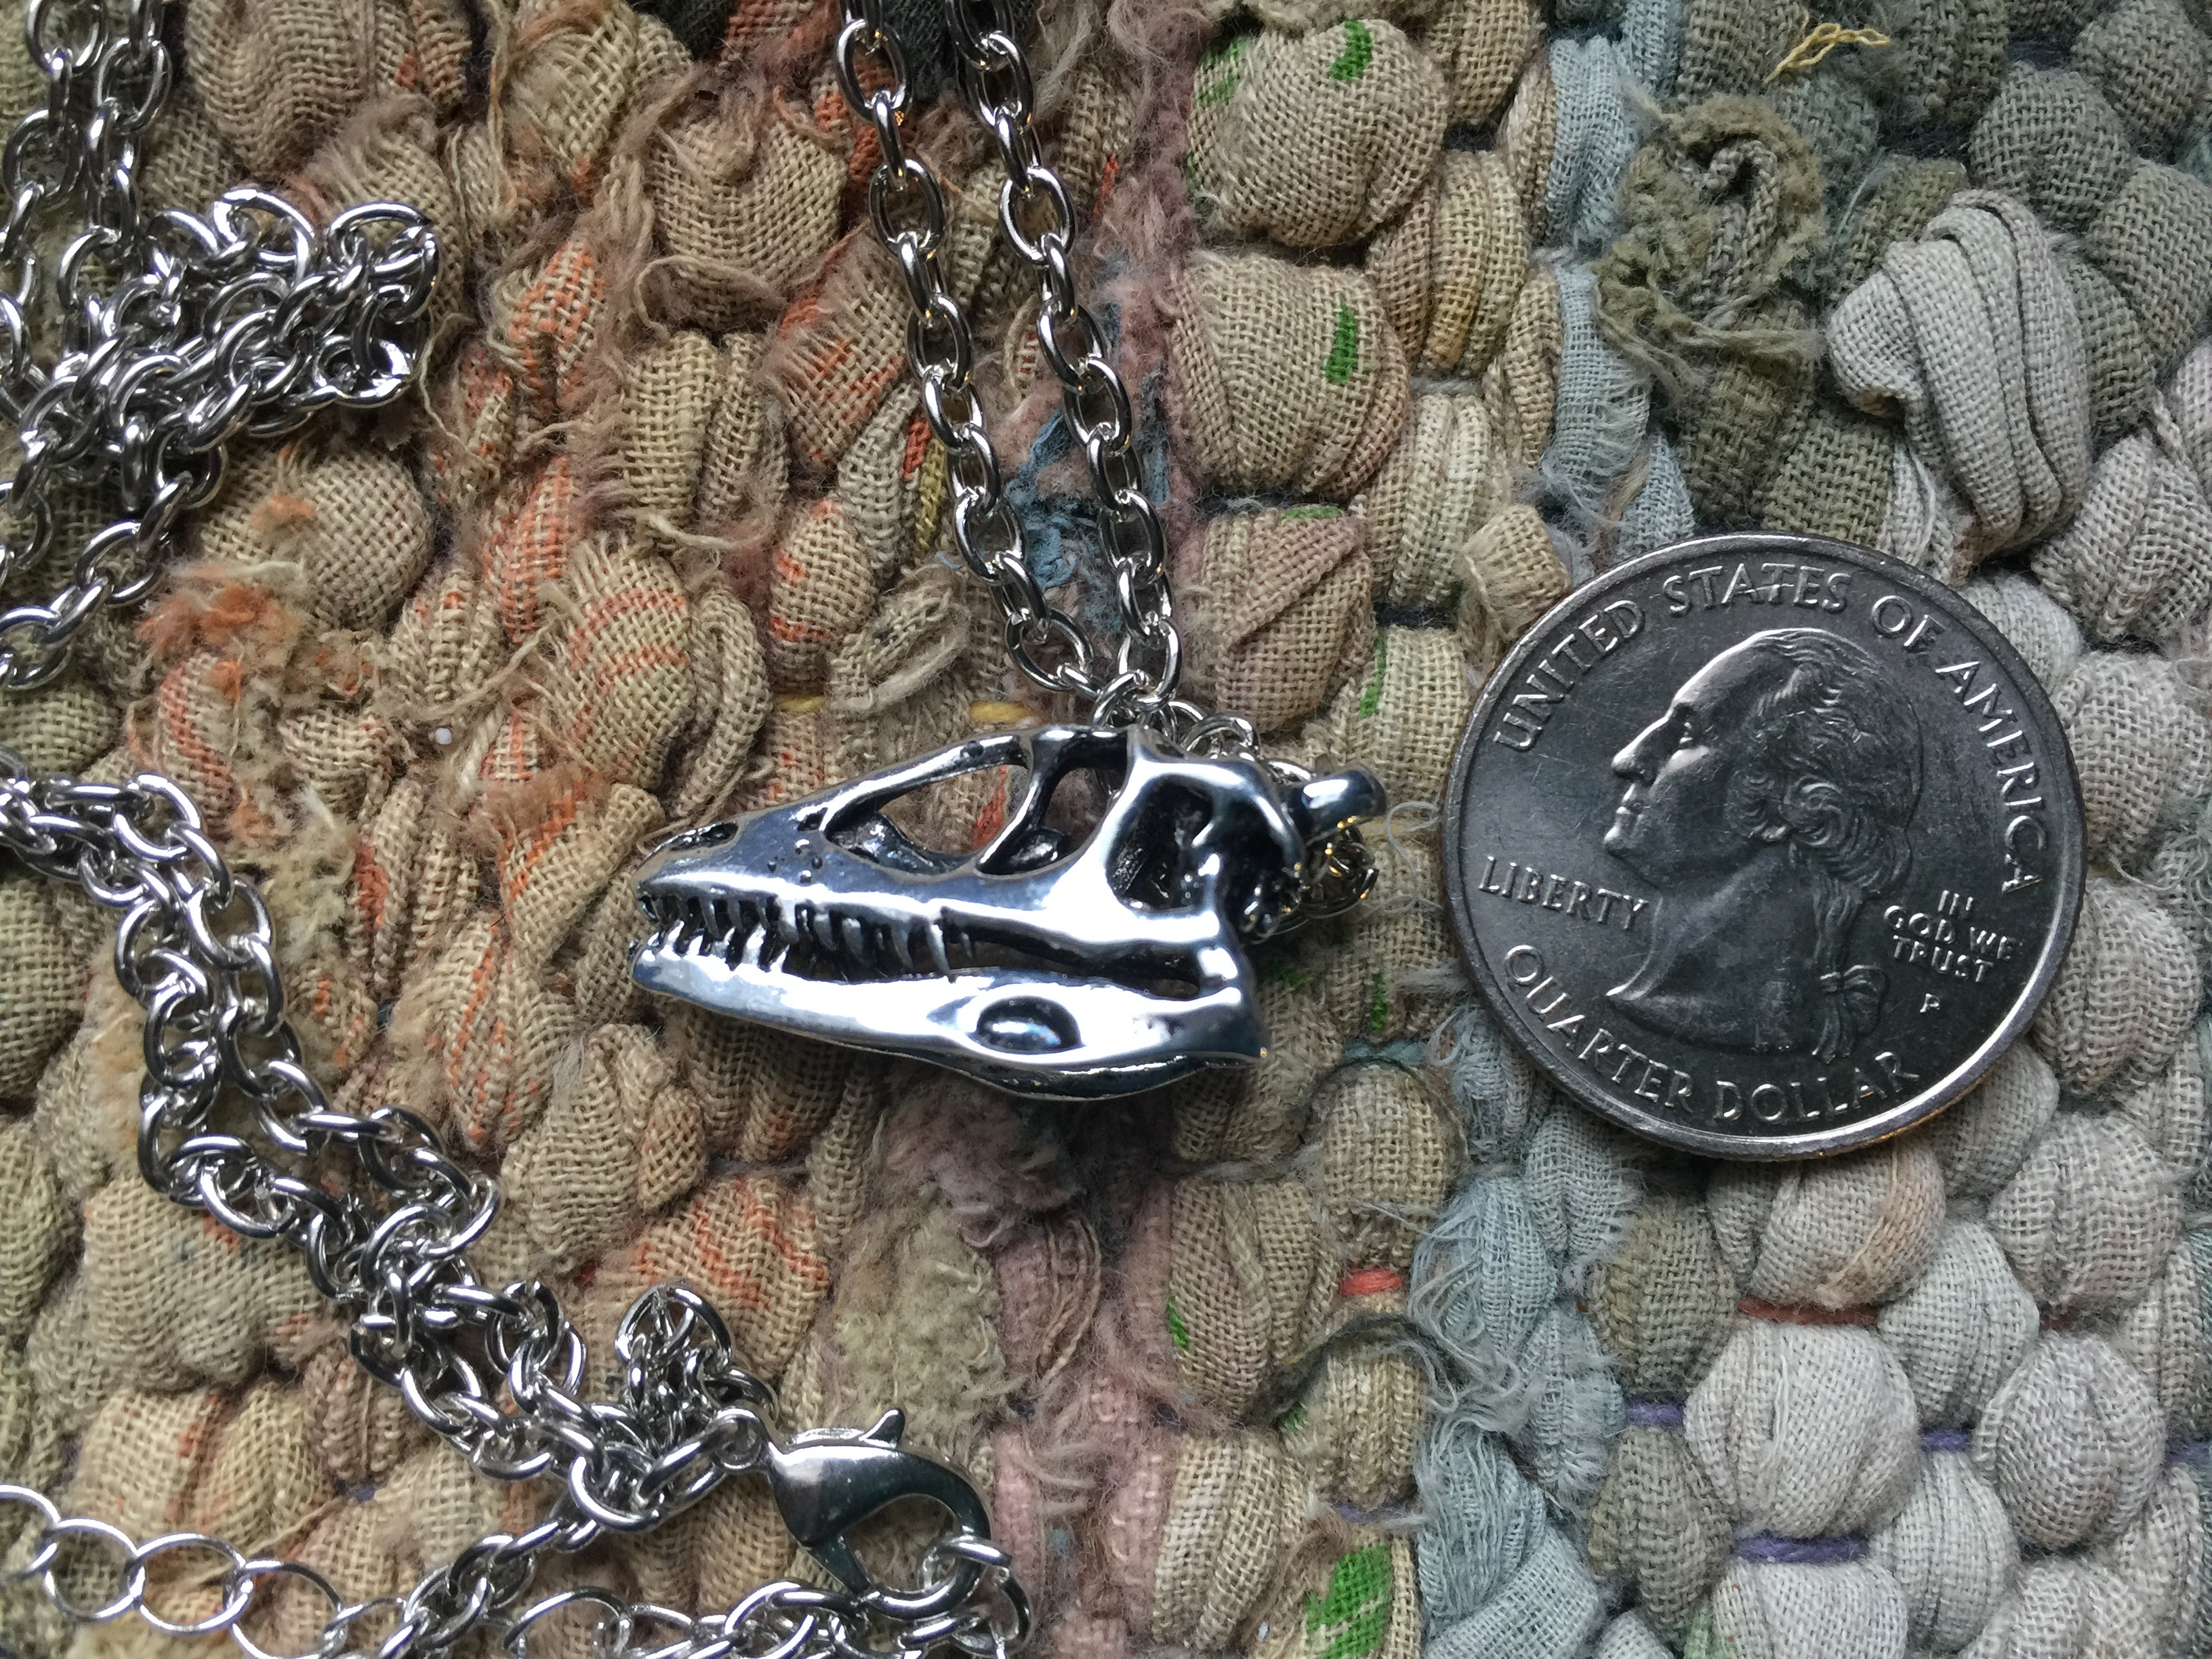 Antique silver 25mm Dinosaur Tyrannosaurus skull pendant with chain (necklace)